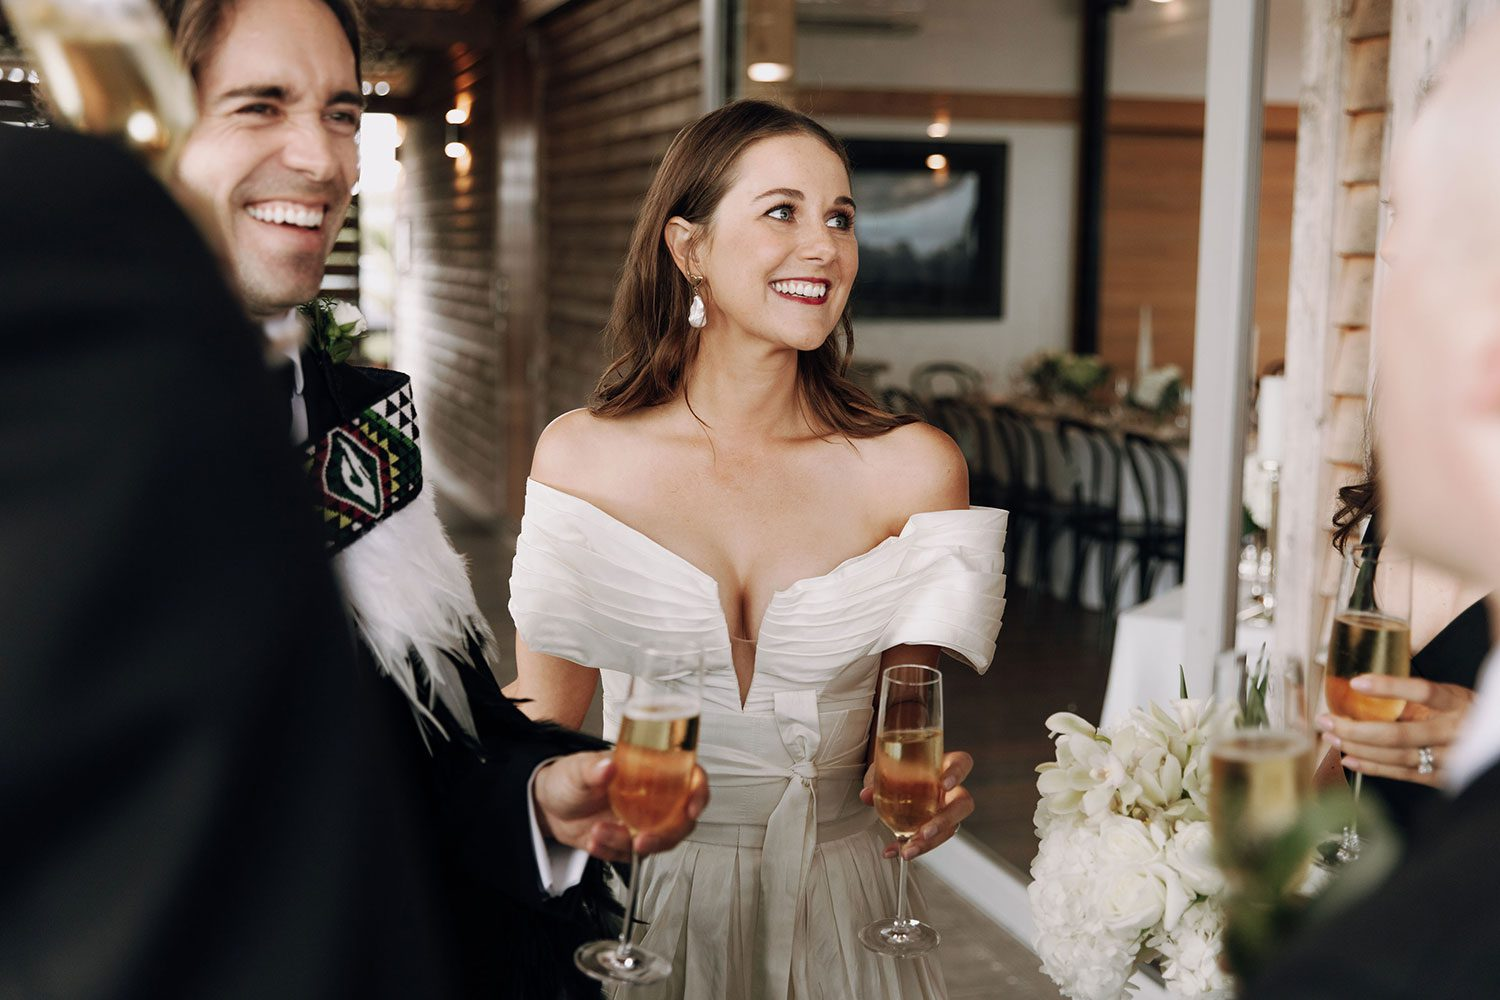 Bride wearing bespoke off shoulder bodice made with silk dupion and long train by NZ wedding dress maker Vinka Designs - laughing with groom